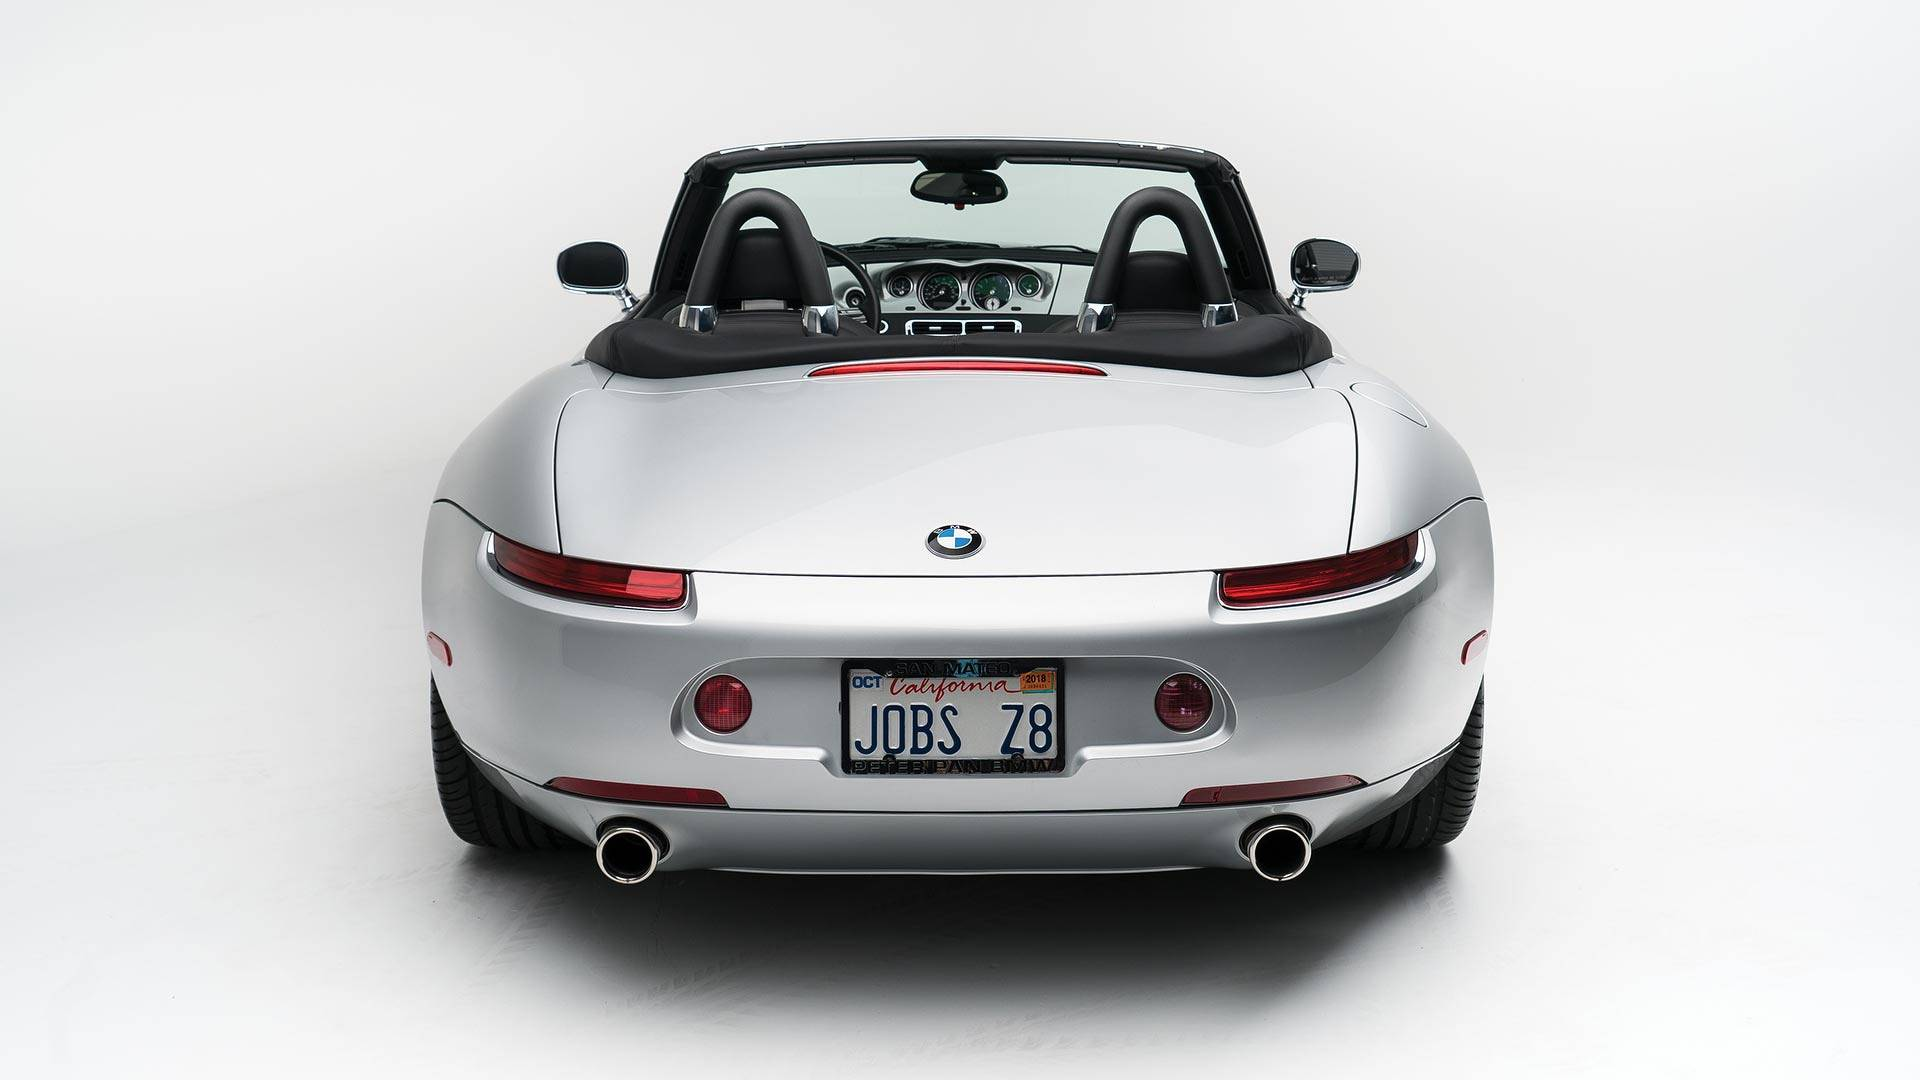 Steve_Jobs_2000_BMW_Z8_auction_0005